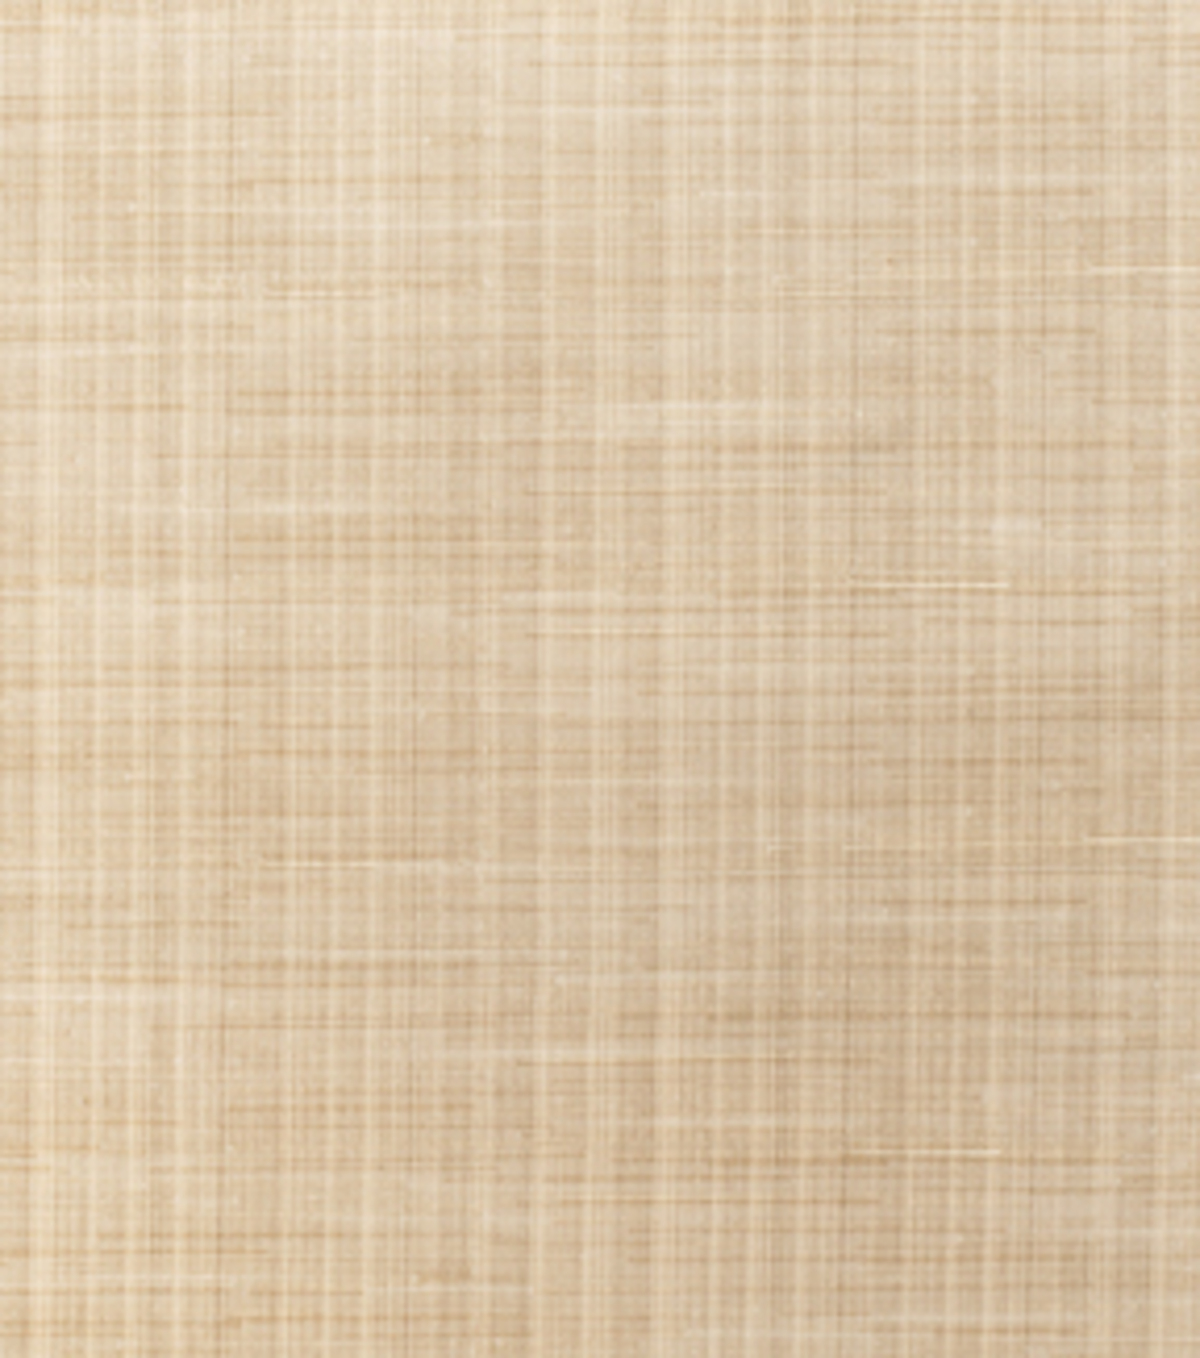 Home Decor 8\u0022x8\u0022 Fabric Swatch-Eaton Square Cargo /  Wheat